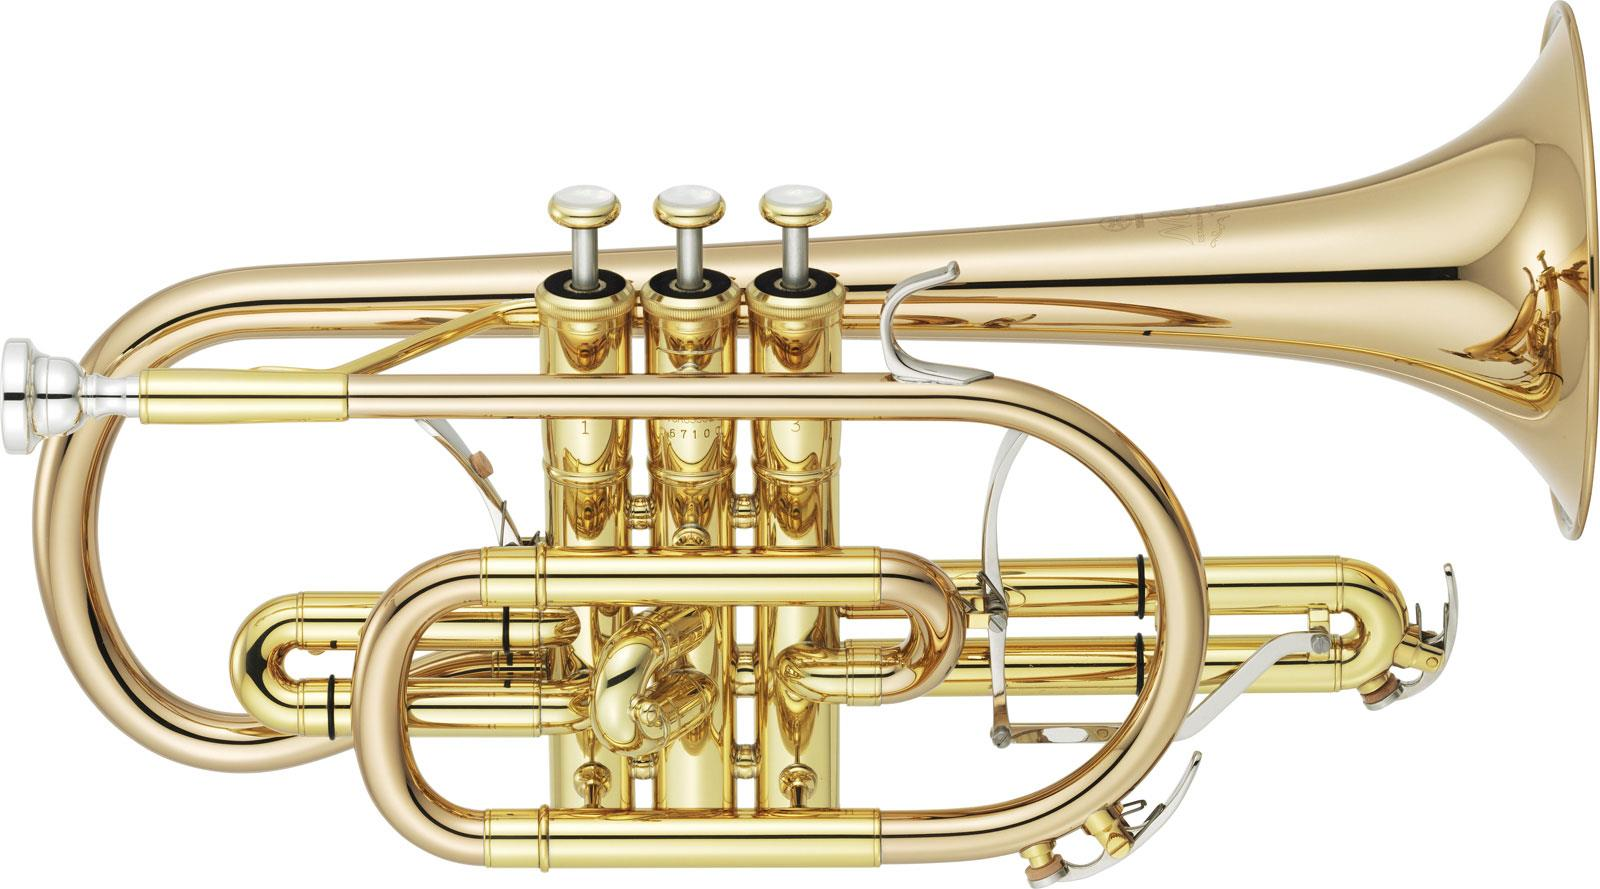 Yamaha ycr 8335g 02 neo series bes cornet gold brass clear for Yamaha electronic wind instrument